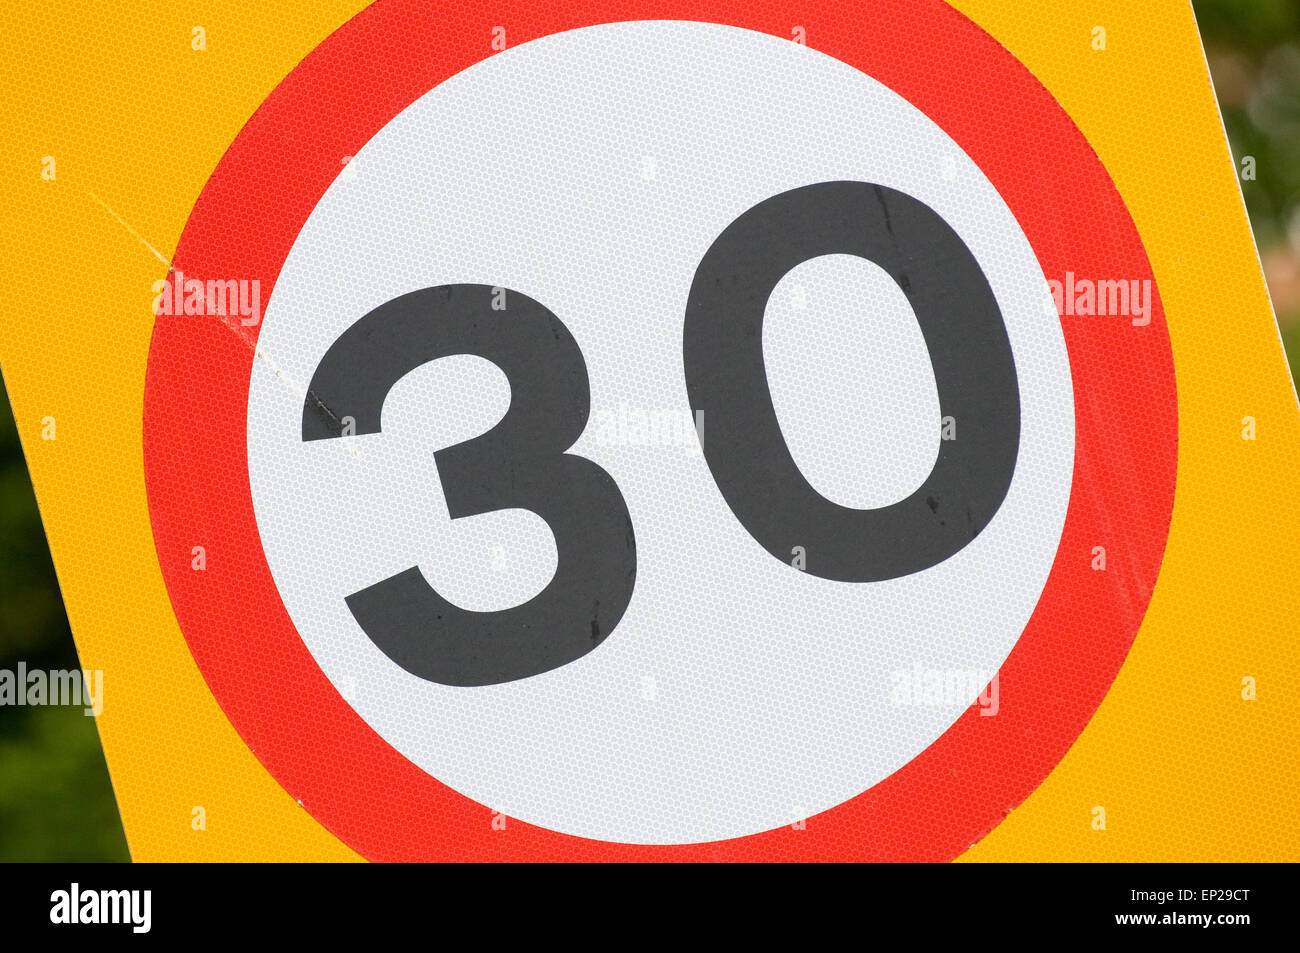 30 mph miles per hour thirty speed limit limits speeding restrictions restricted urban road roads road sign signs - Stock Image